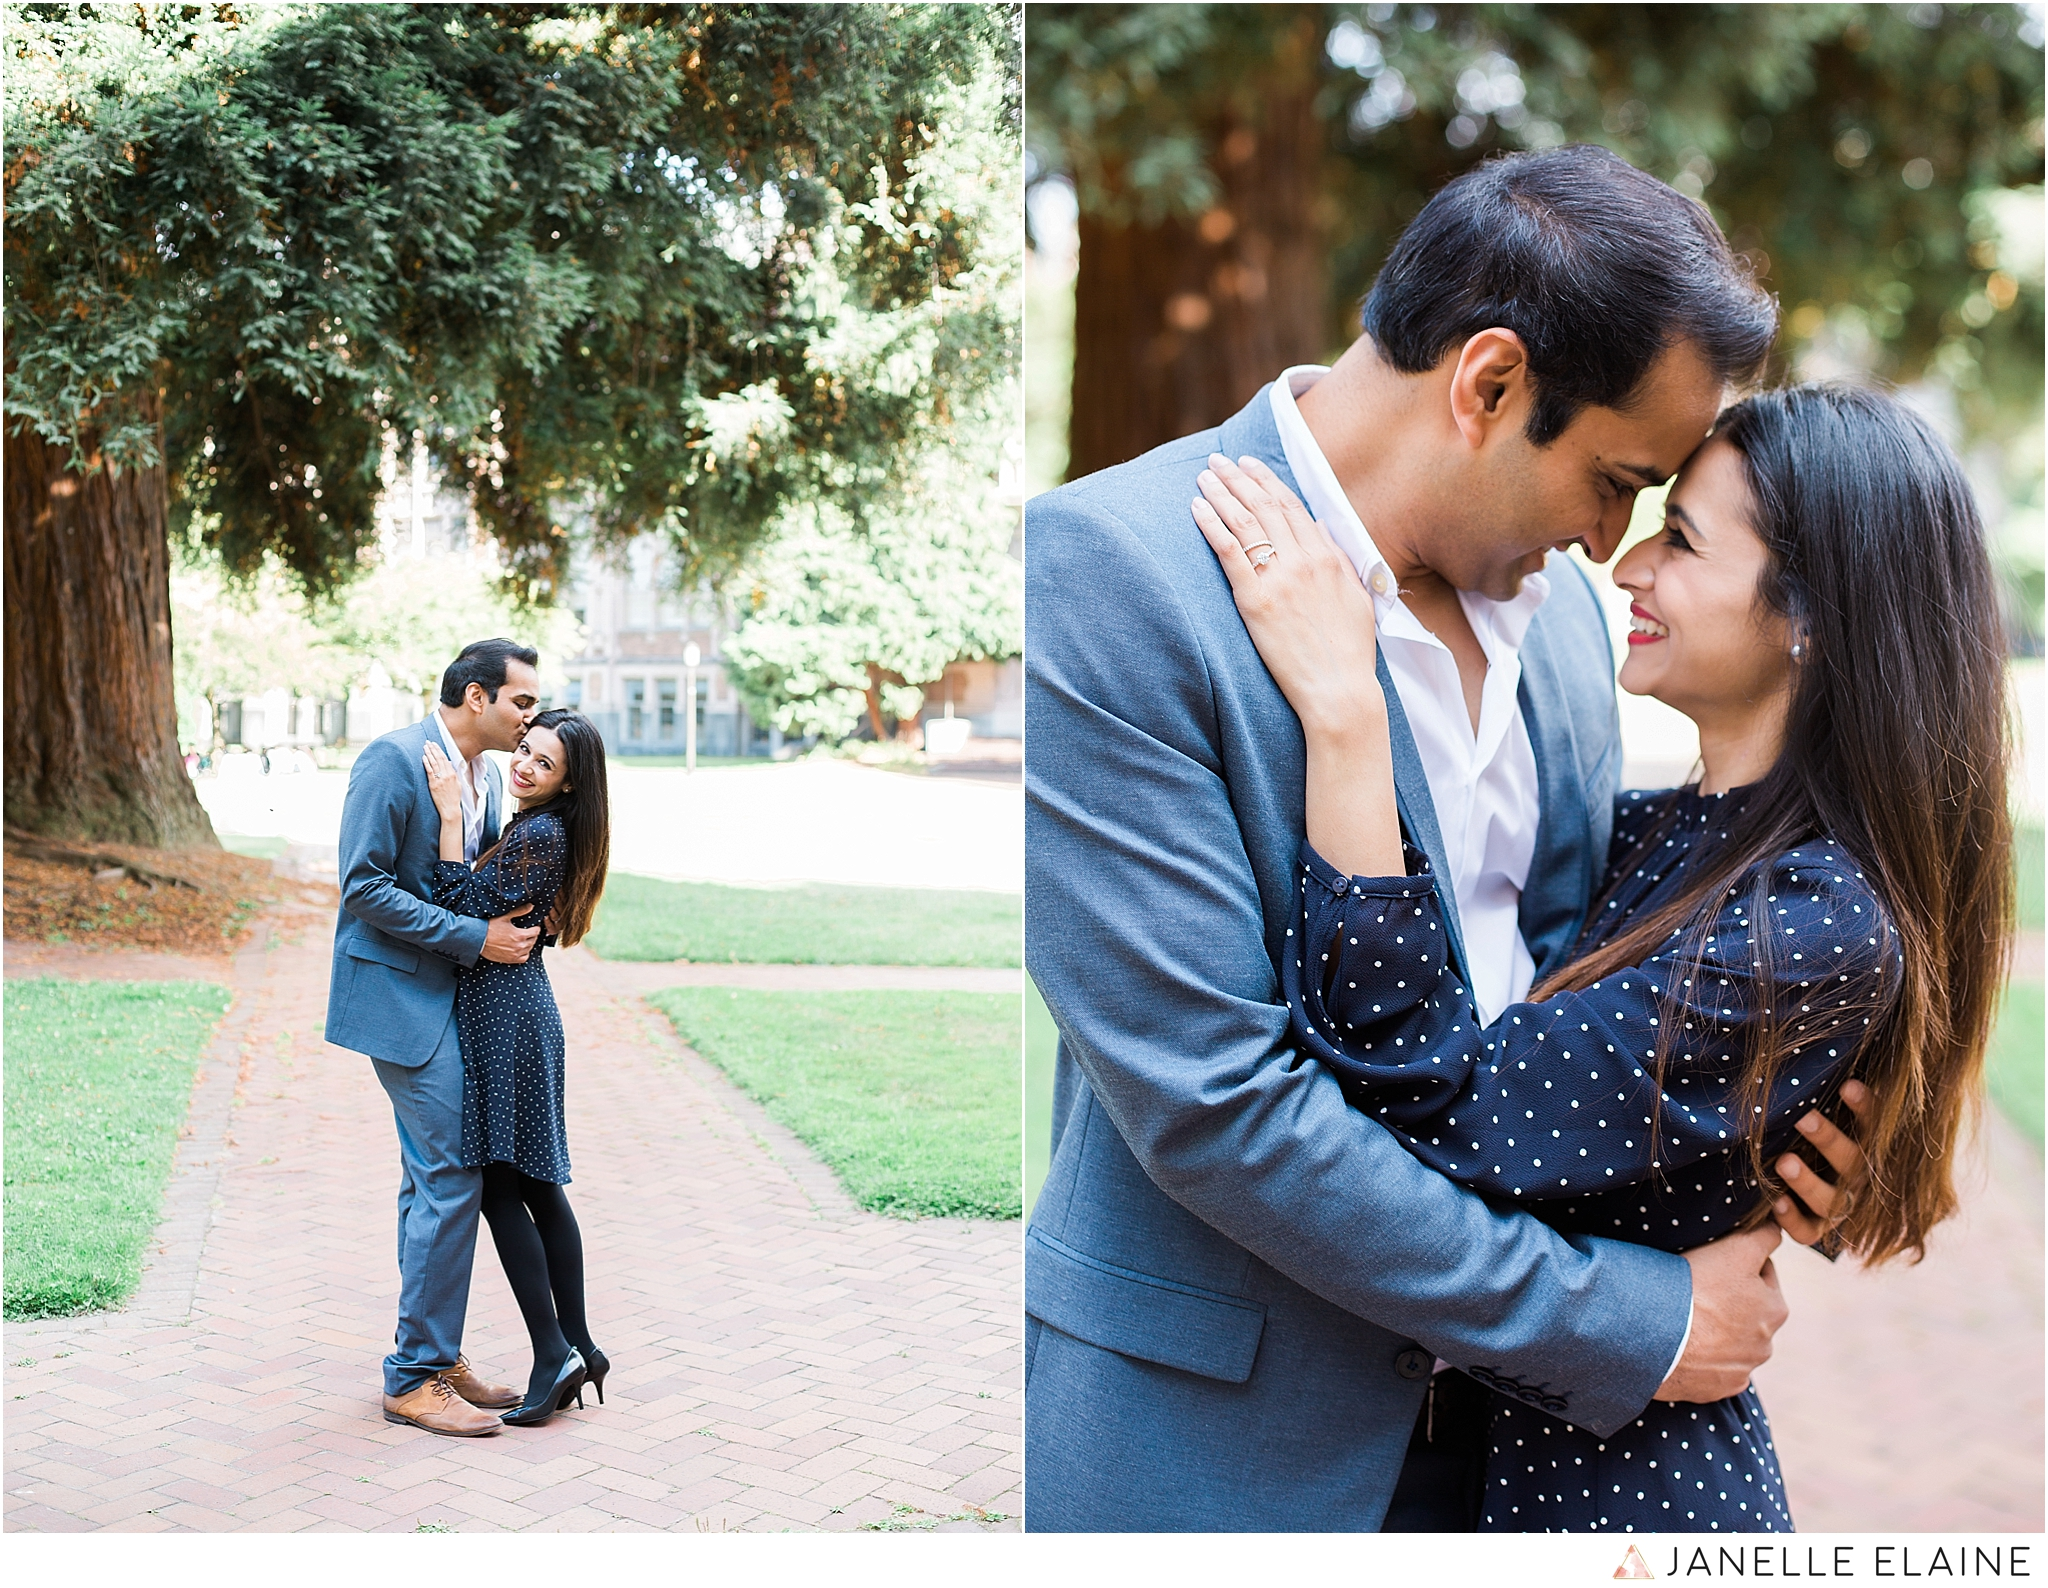 janelle elaine photography-zain and umema-seattle-uw-red square-engagement-photographer-4.jpg